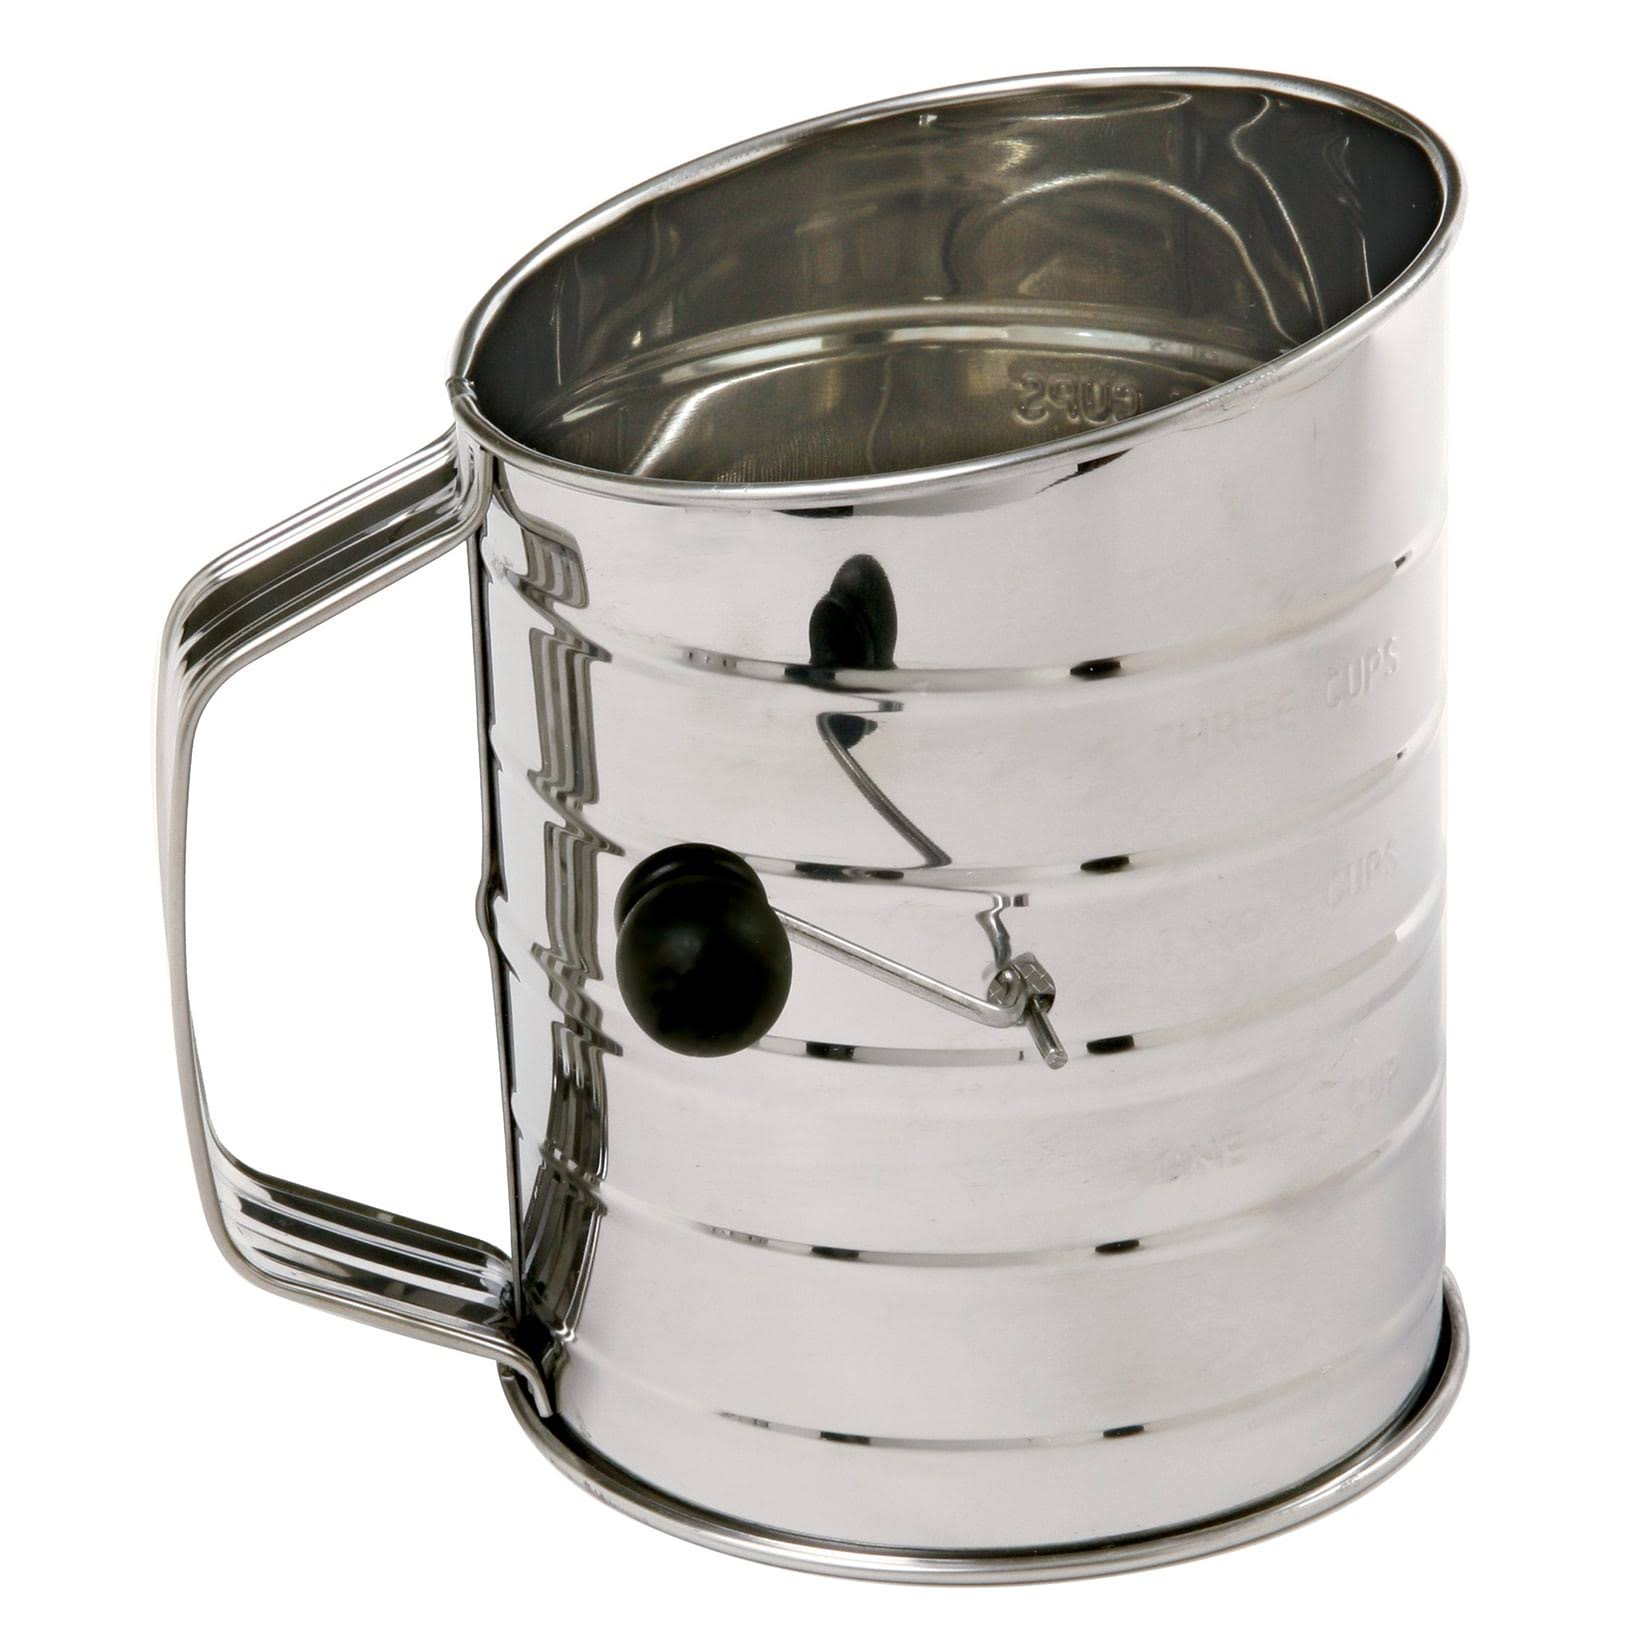 Norpro Crank Flour Sifter - Stainless Steel